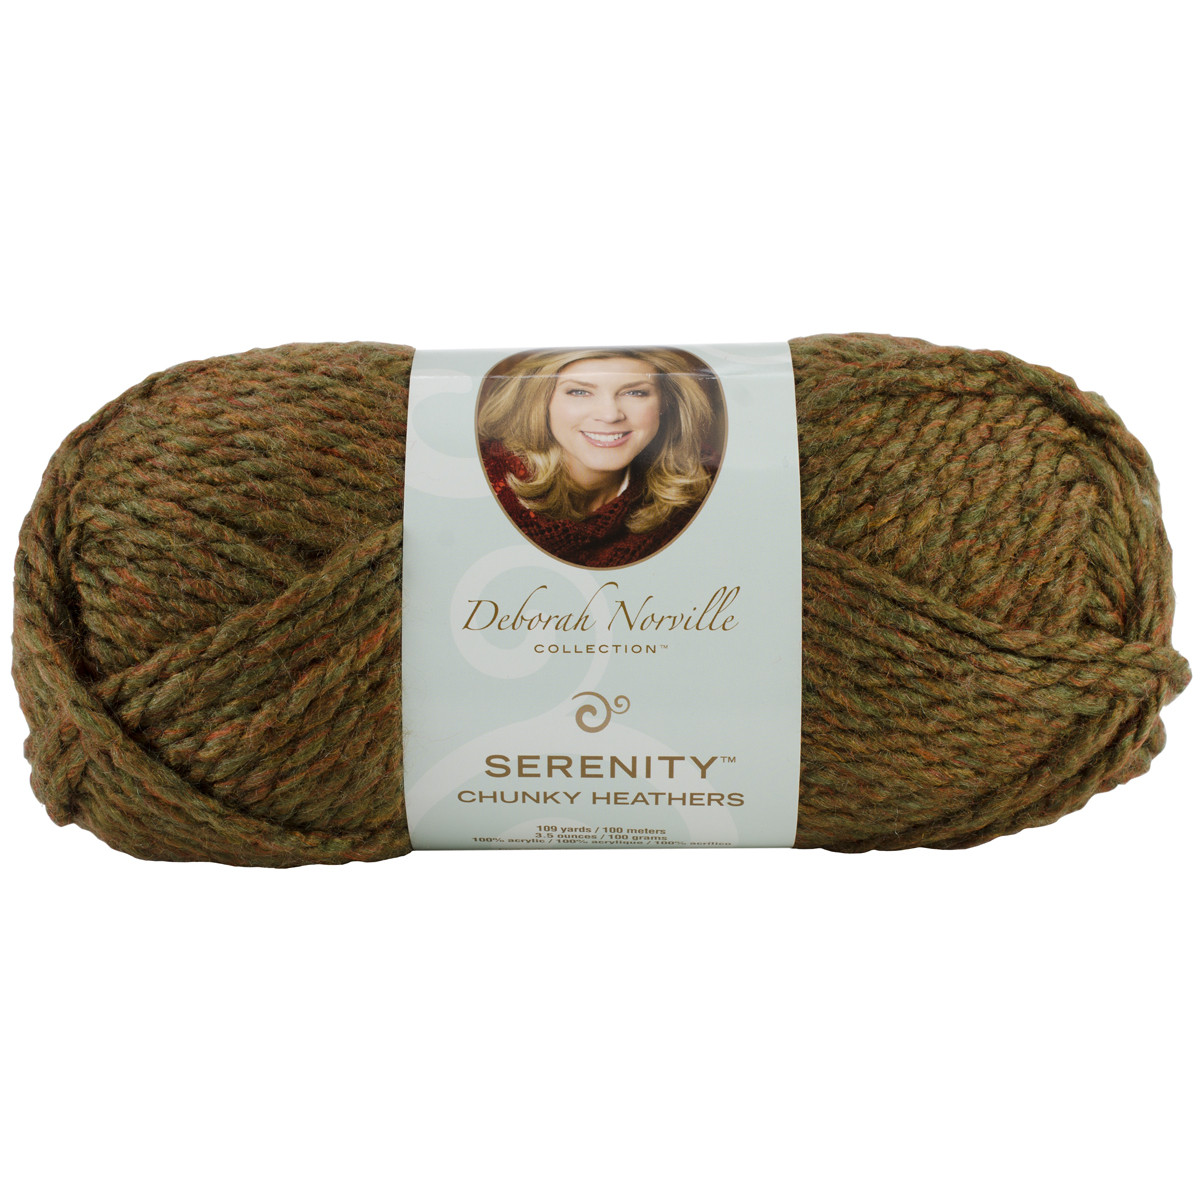 Deborah norville Yarn New Deborah norville Collection Serenity Chunky Heathers Yarn Of Amazing 50 Pics Deborah norville Yarn